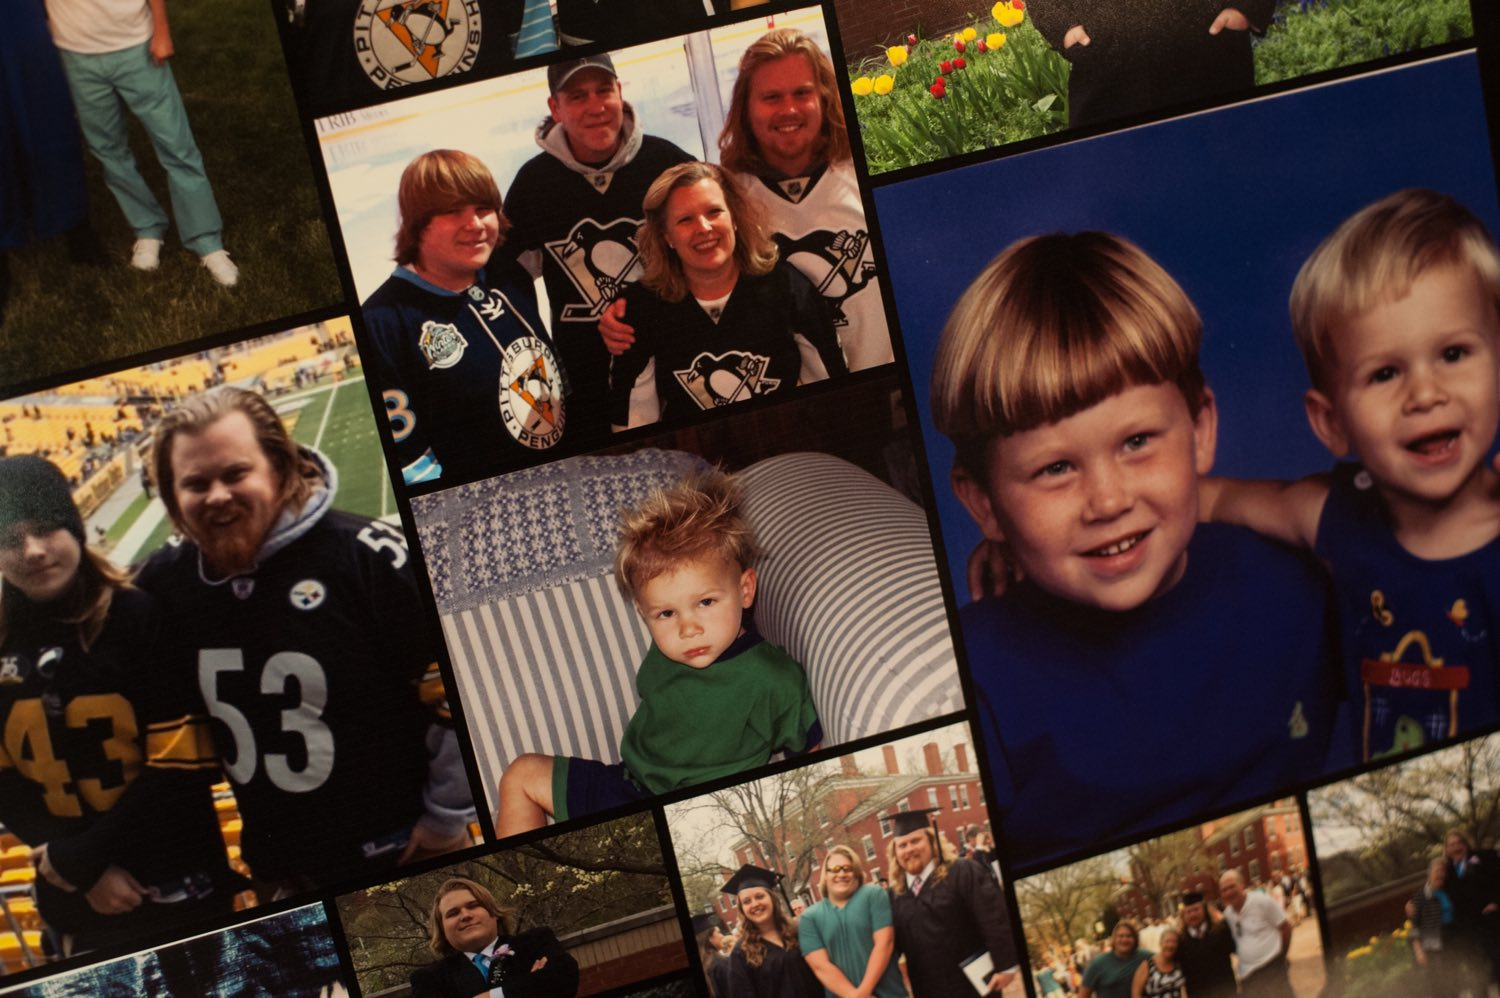 Photos of Spenser Flowers and his family cover one of several boards of memories that were displayed at his funeral after he died of an opioid overdose on Jan. 1, 2017. Stephanie Strasburg/Post-Gazette)